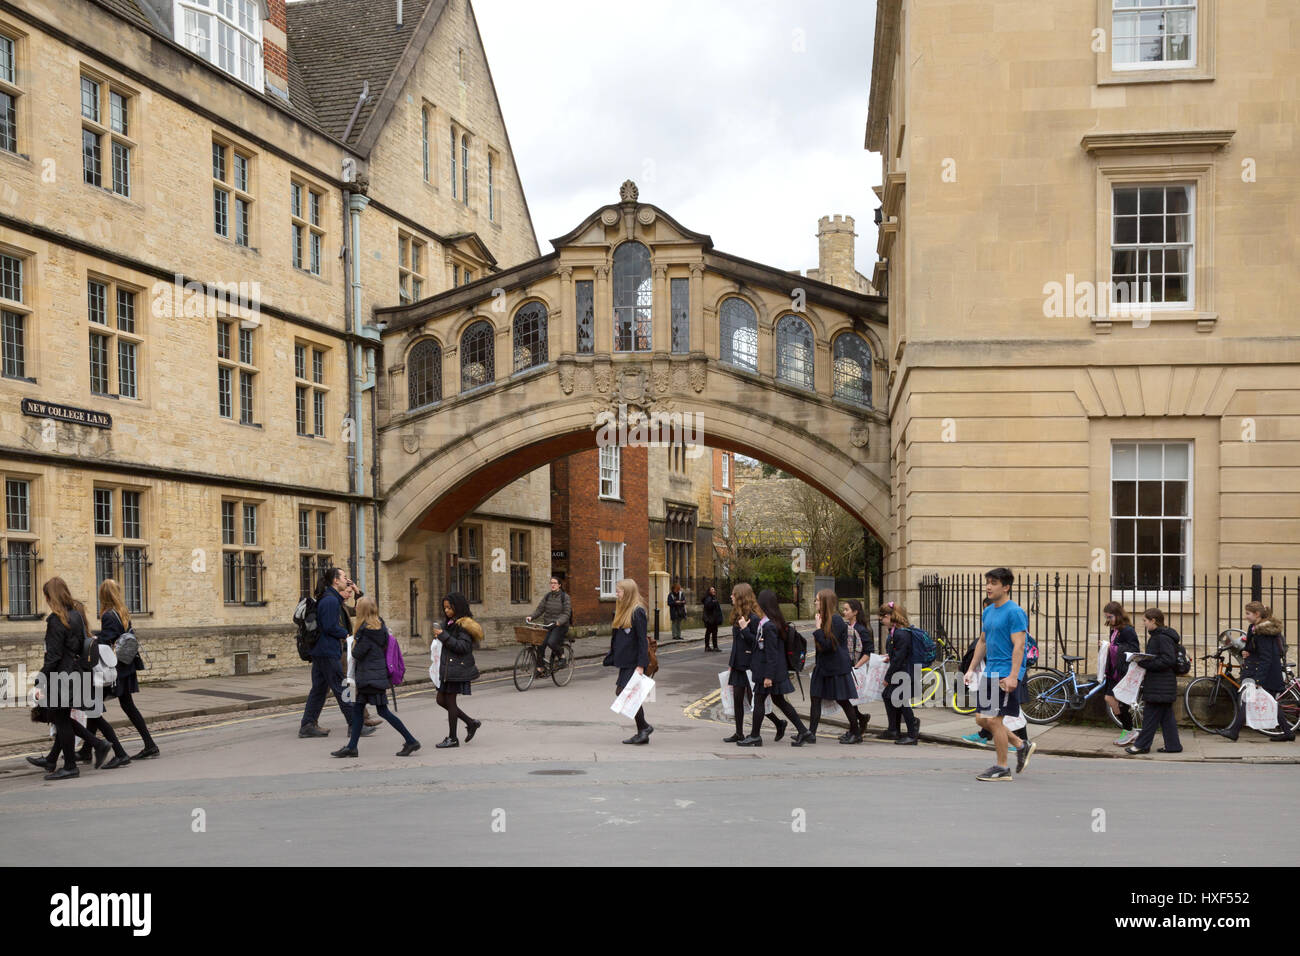 Schoolchildren on a school trip, Bridge of Sighs, Hertford College, Oxford UK, - Stock Image